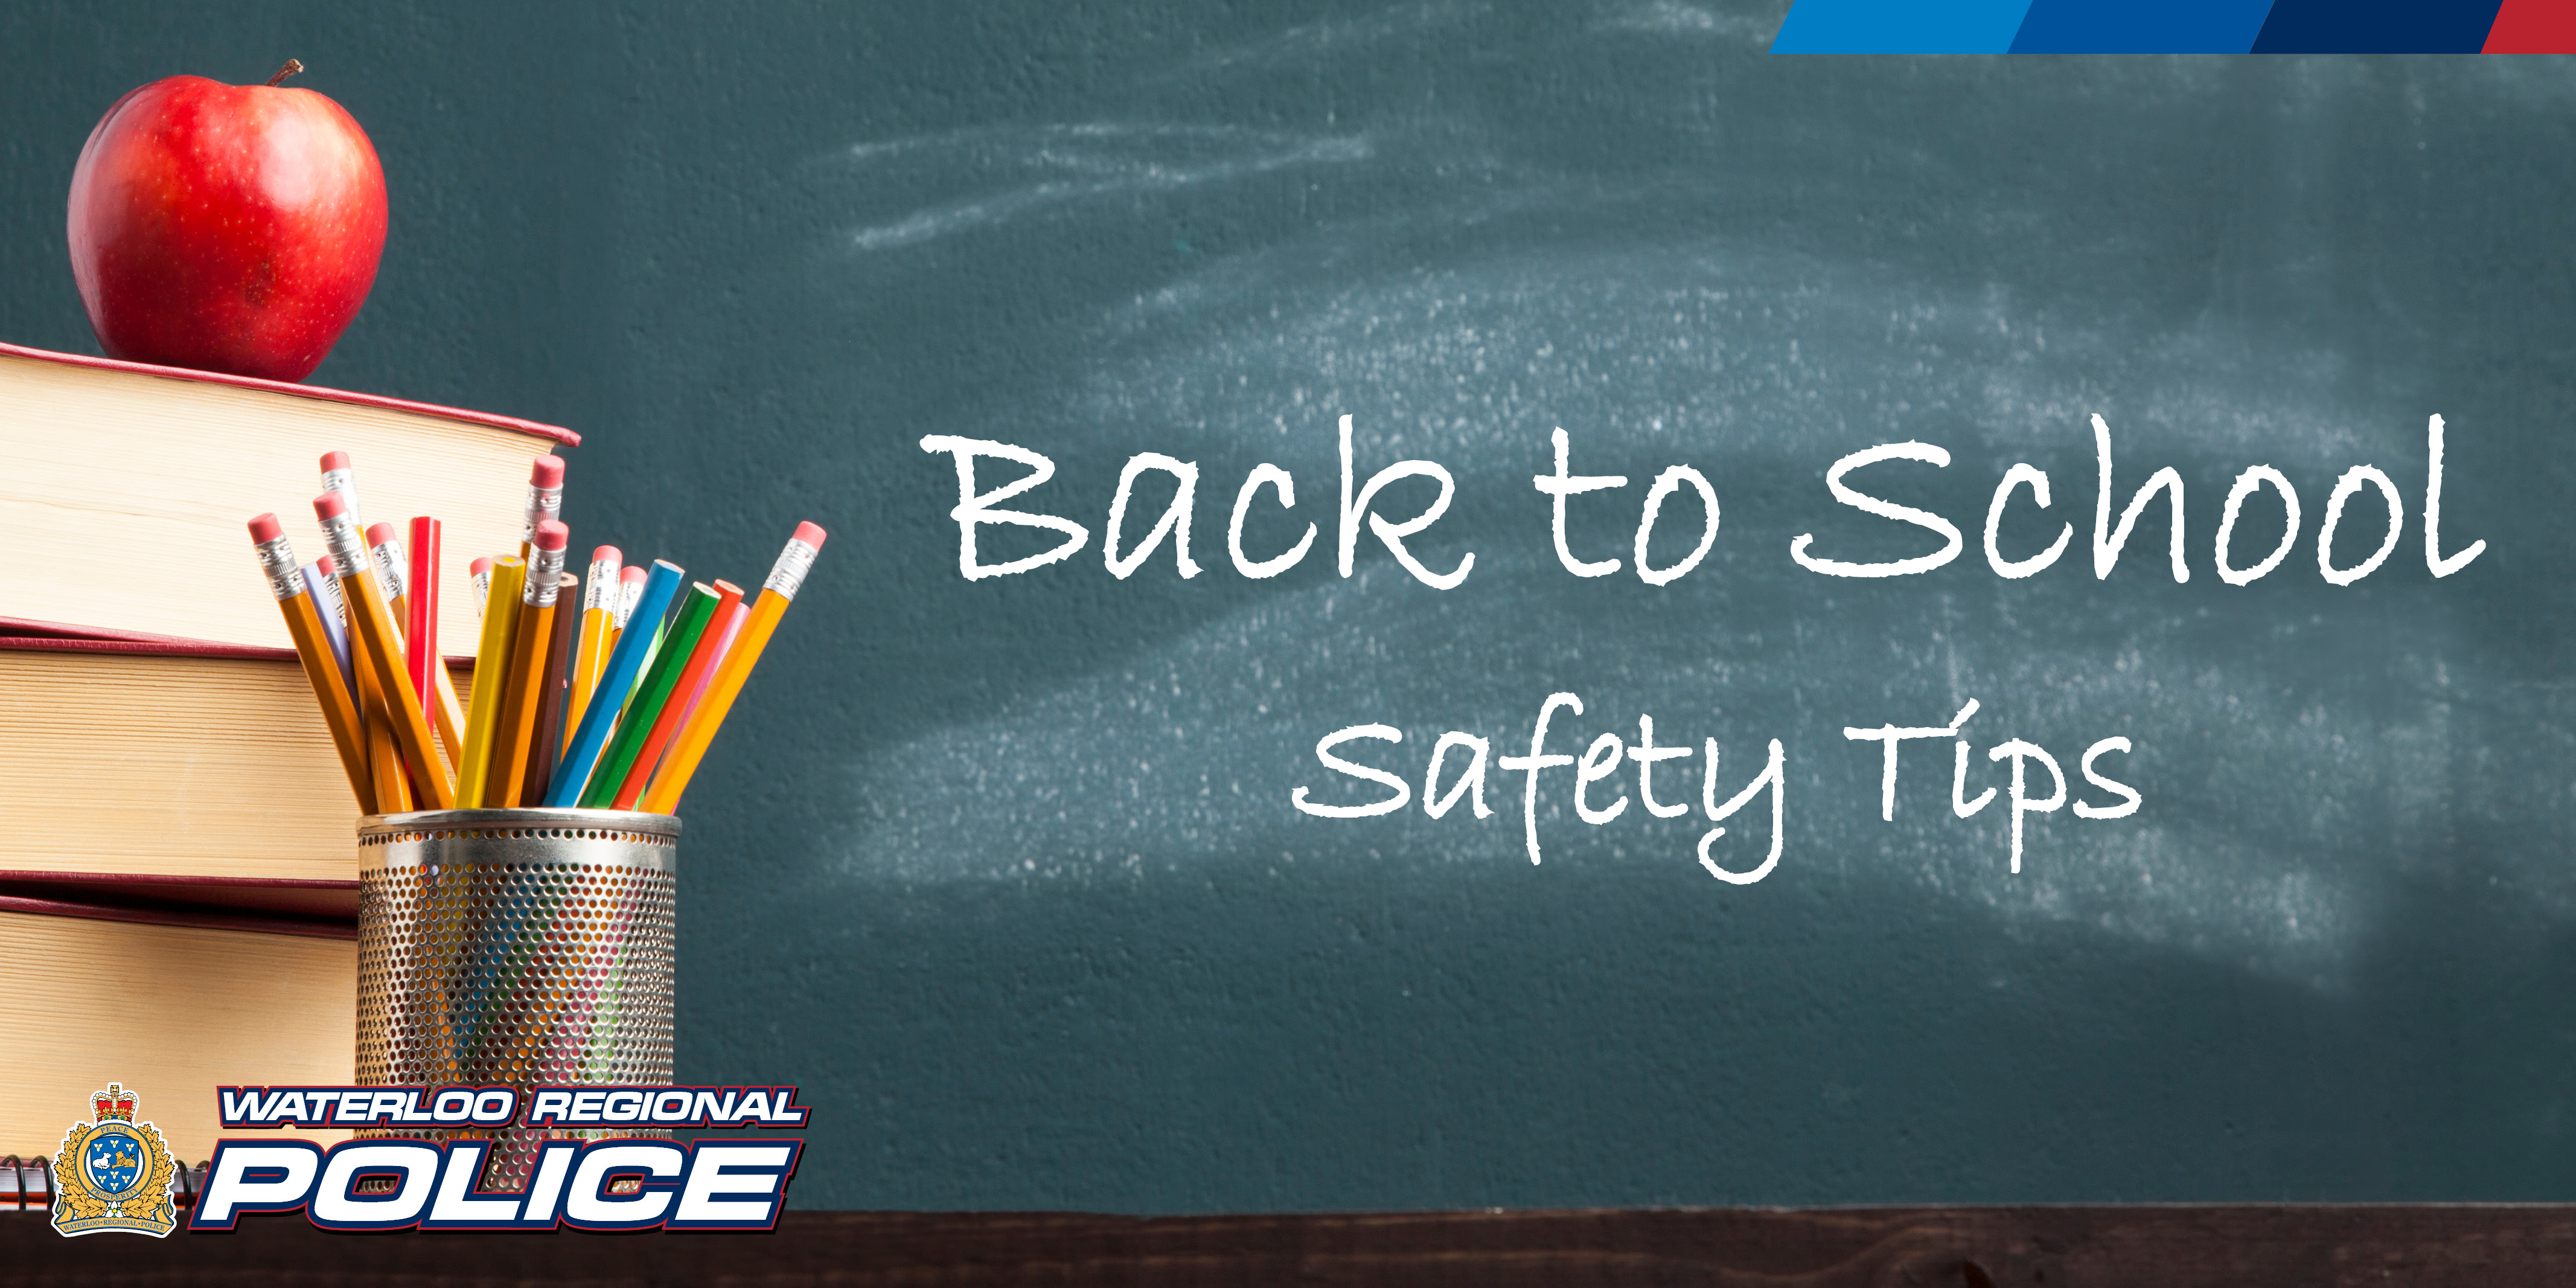 WRPS Back to School Safety Tips